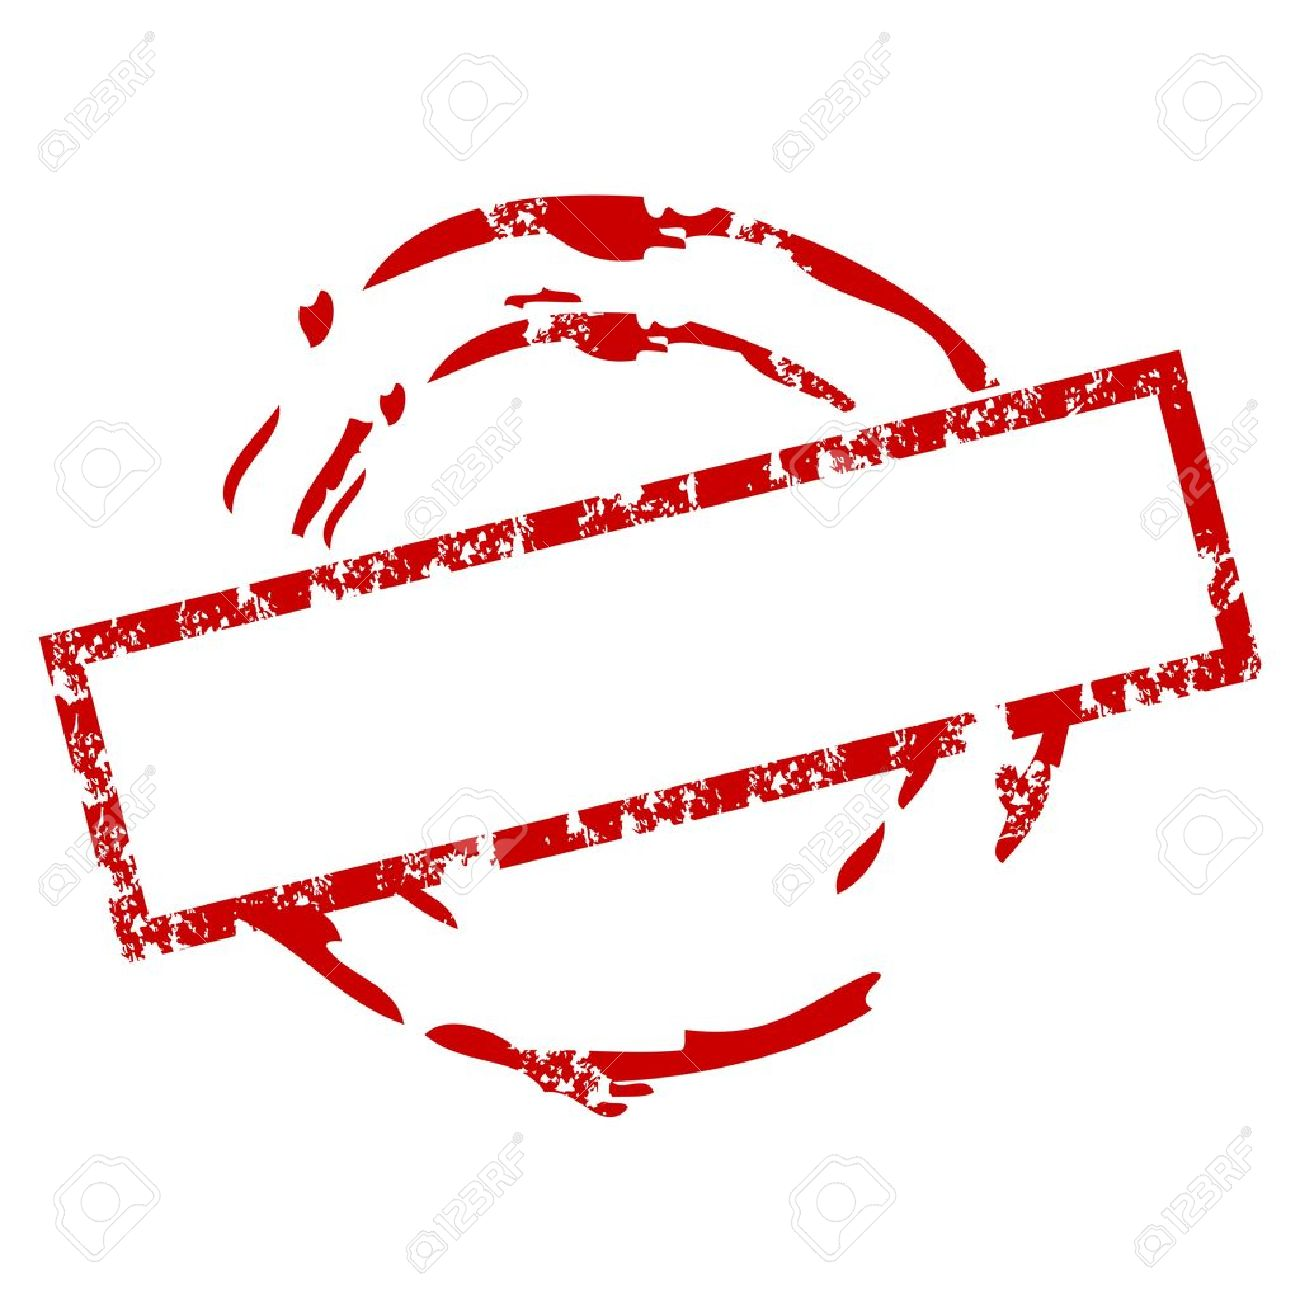 Empty rubber stamp.